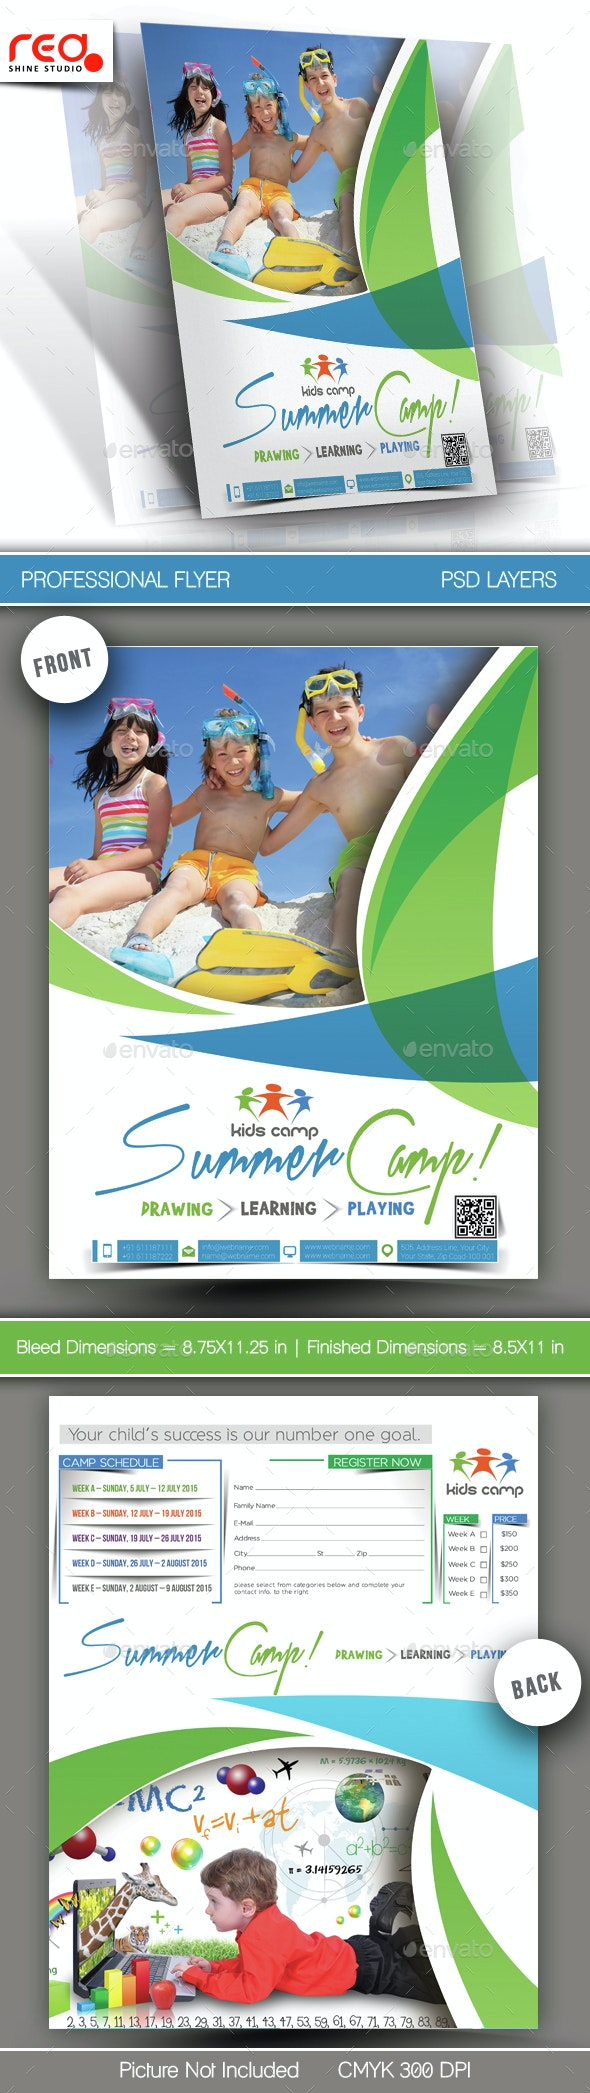 Summer Camp Flyer Template - 1 - Corporate Flyers